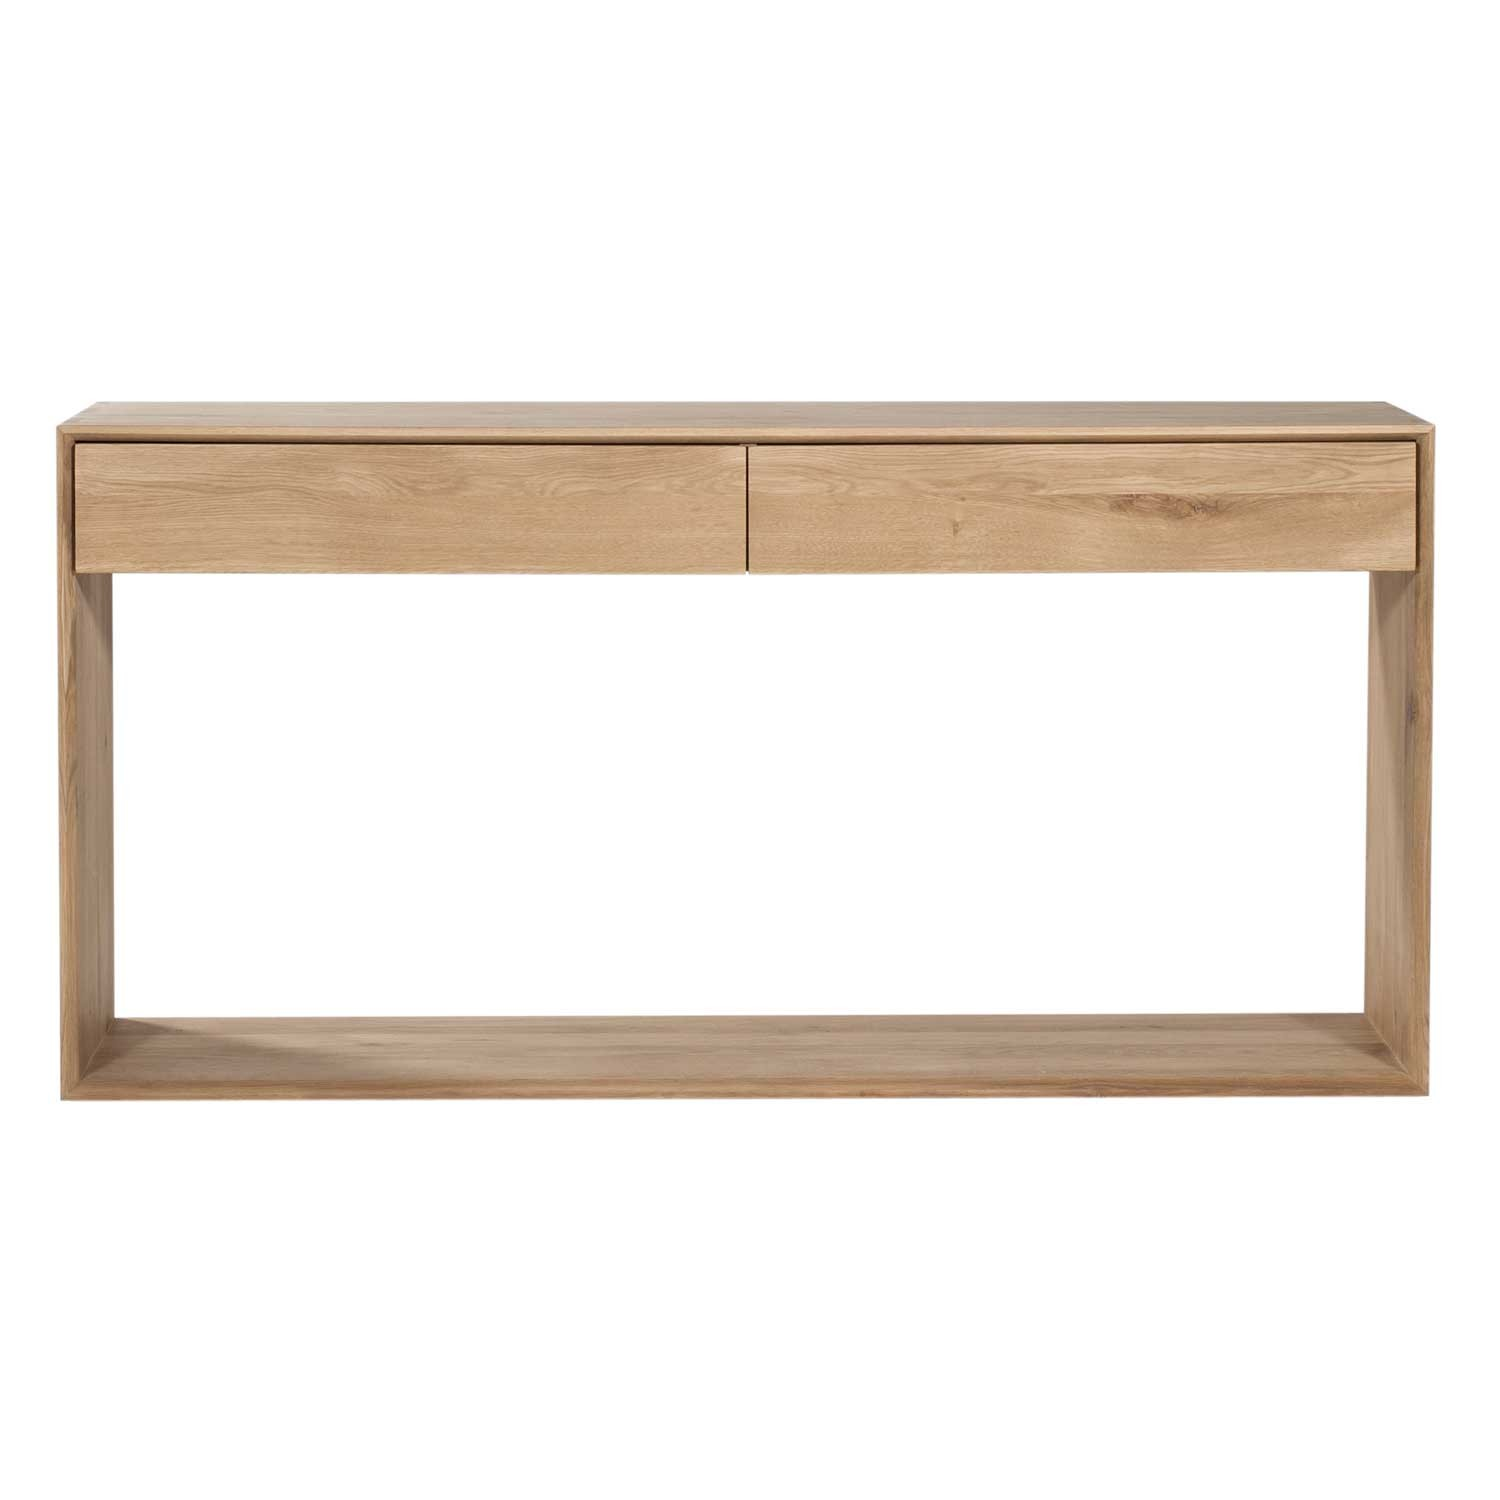 Ethnicraft oak nordic console 2 drawers - Table console chene ...